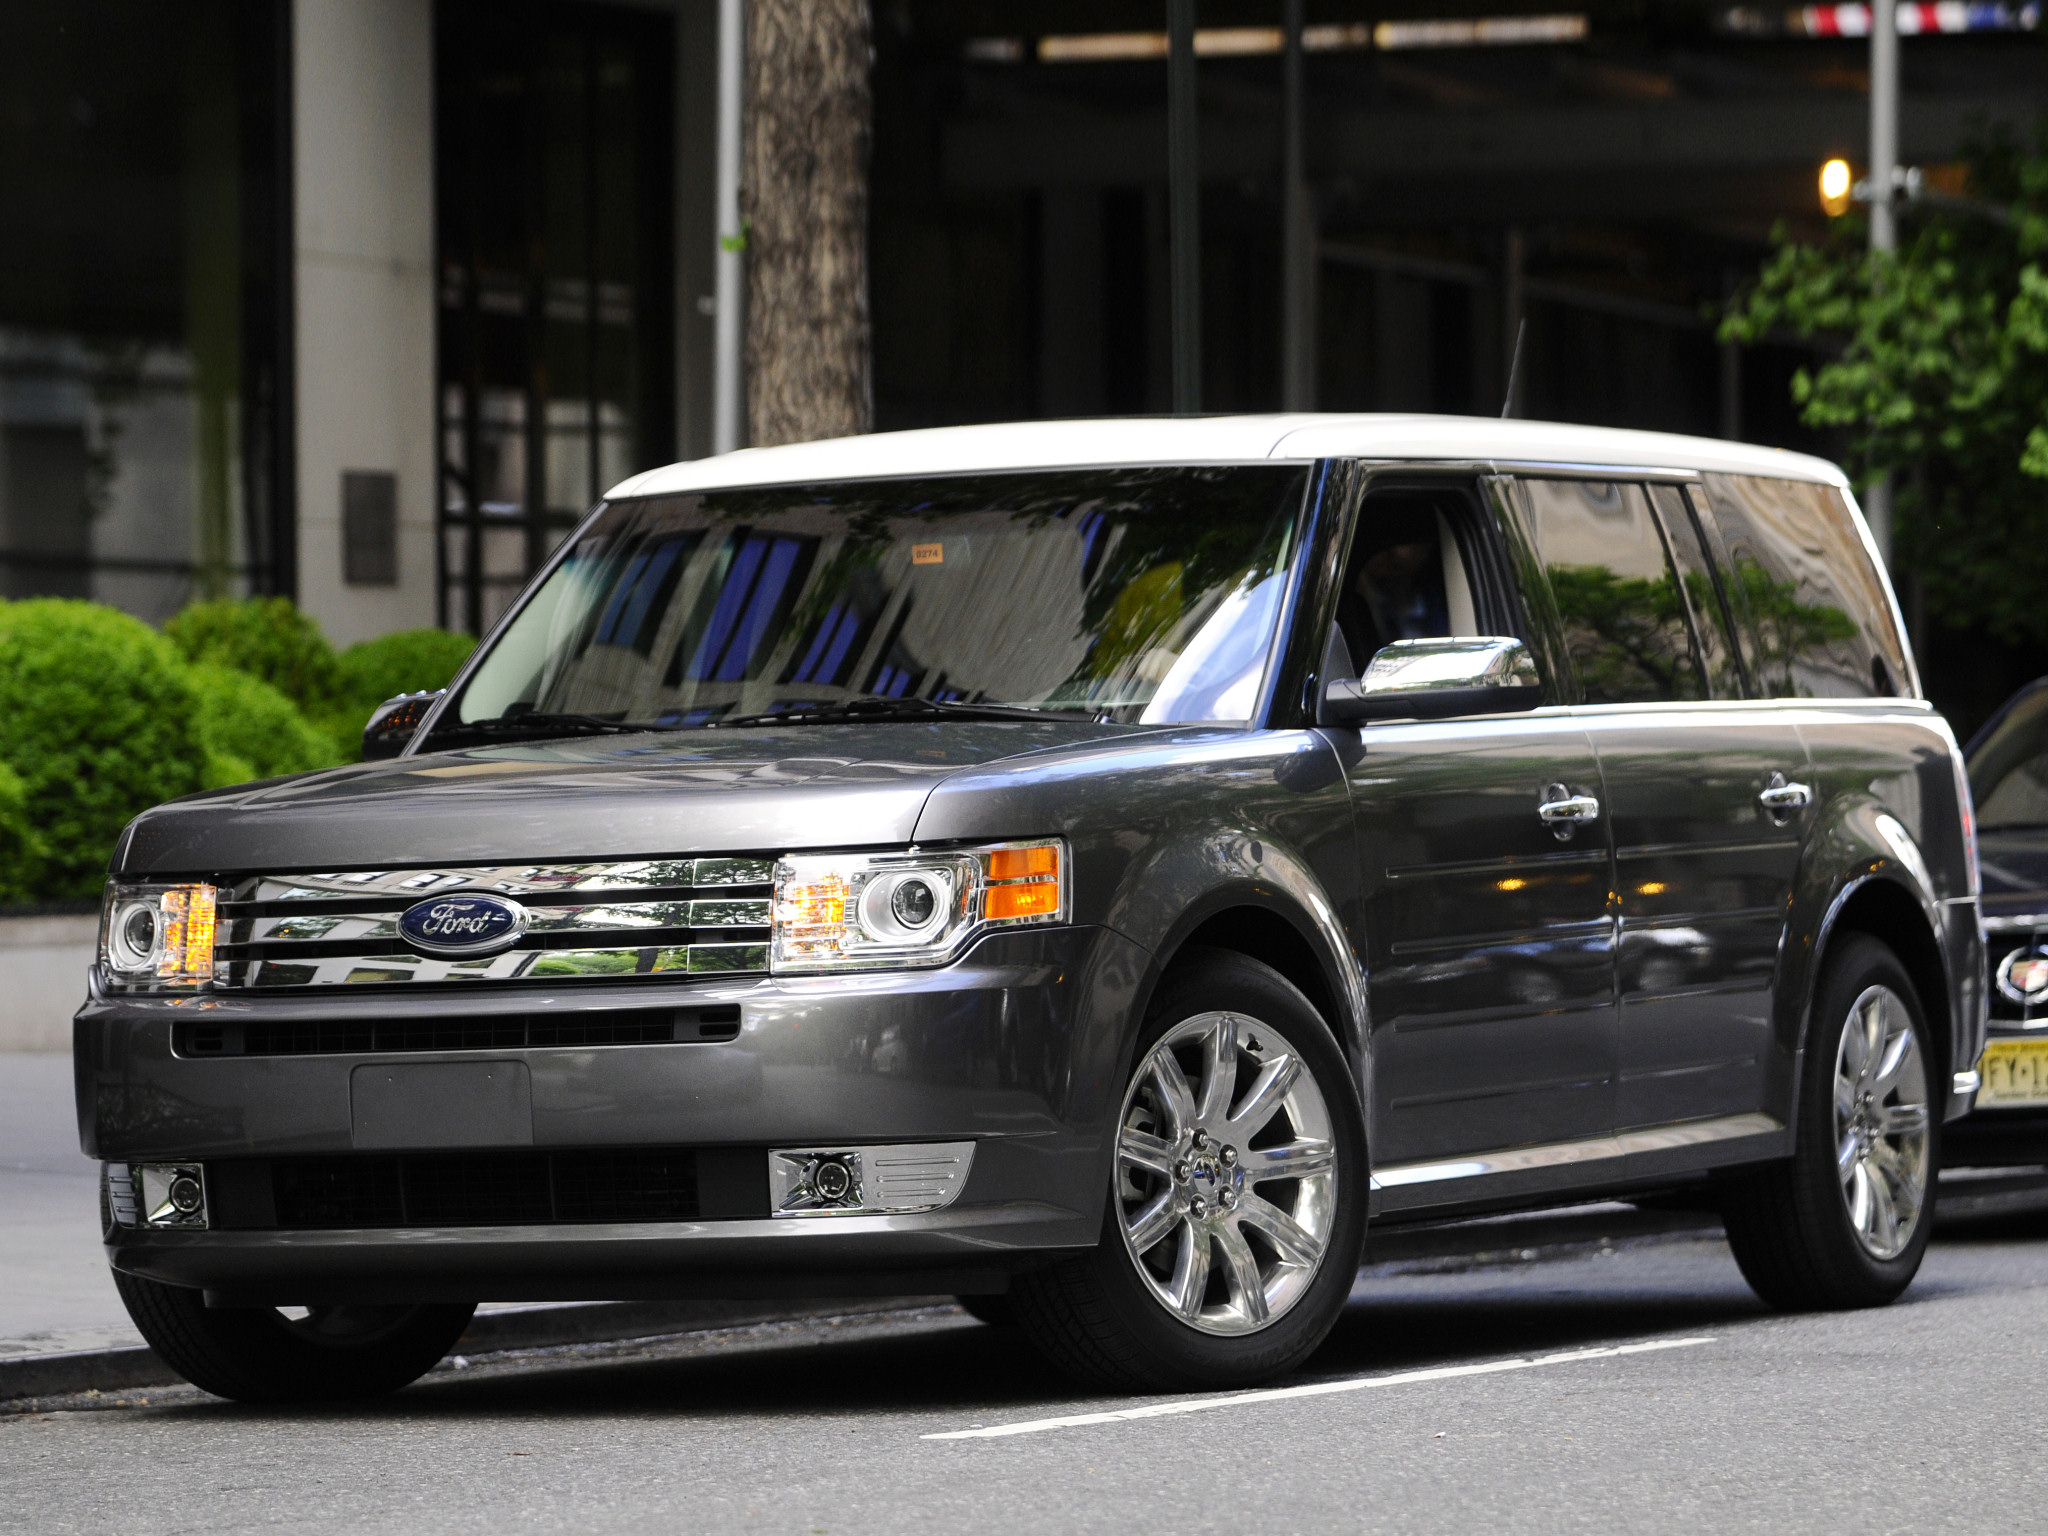 2009 Ford Flex (select to view enlarged photo)